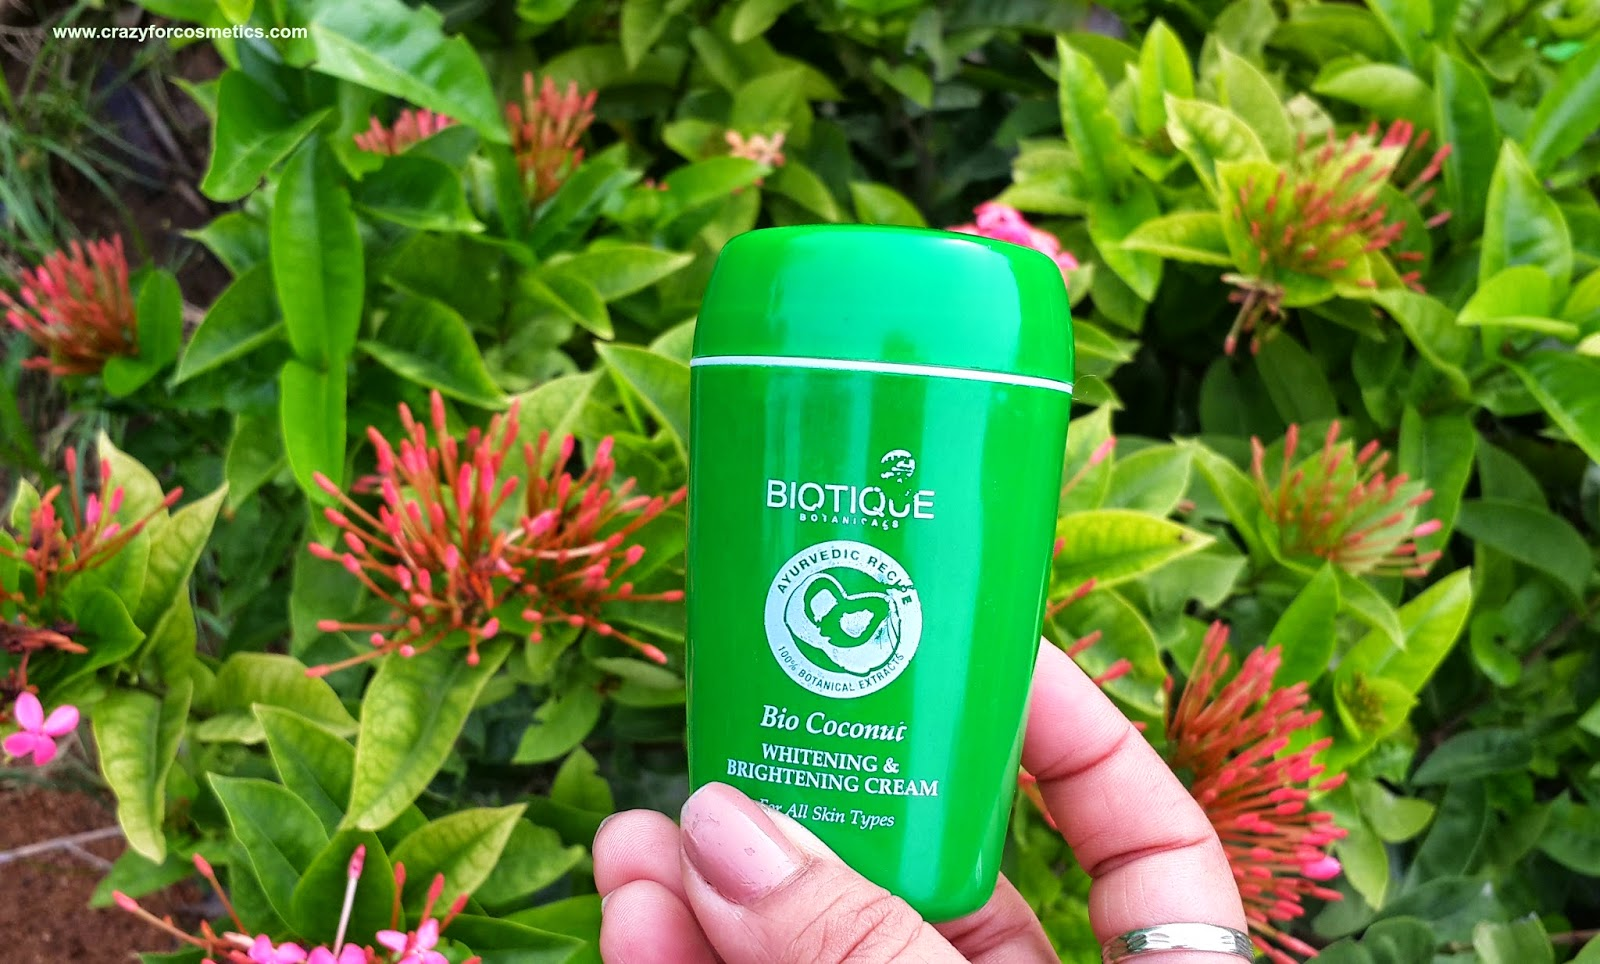 Biotique Bio Coconut Whitening & Brightening cream-Biotique Bio Coconut Whitening & Brightening cream India-Biotique Bio Coconut Whitening & Brightening cream usage-Biotique products-Ayurvedic skincare products India